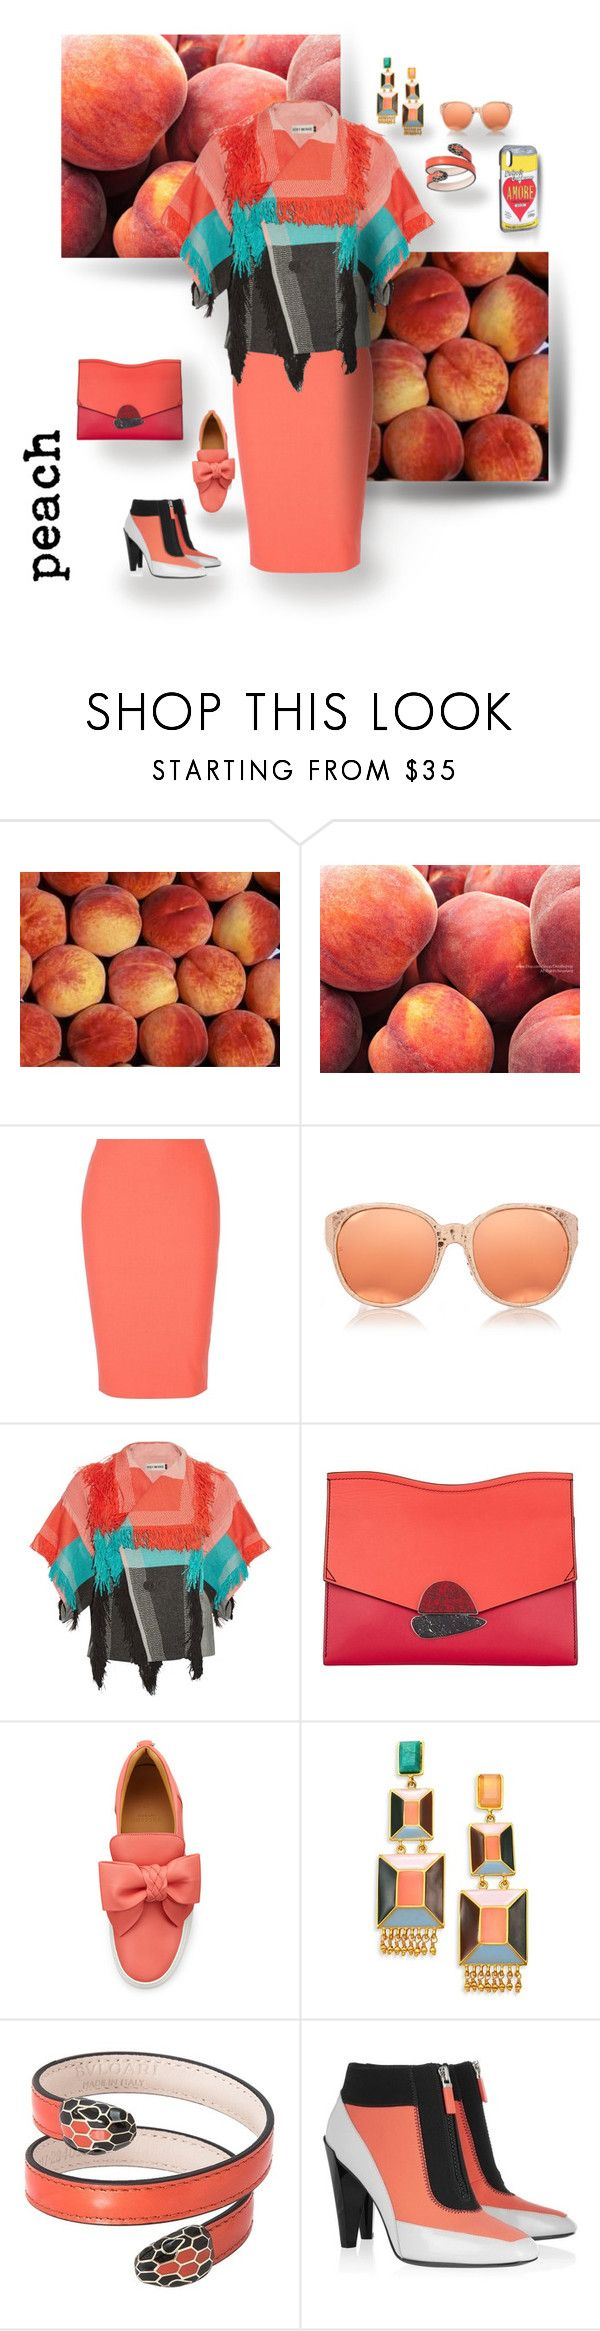 """PEACH!"" by hrhjustcuz ❤ liked on Polyvore featuring Elizabeth and James, Linda Farrow, Issey Miyake, Proenza Schouler, BUSCEMI, Paula Mendoza, Bulgari, Kenzo and Dolce&Gabbana"